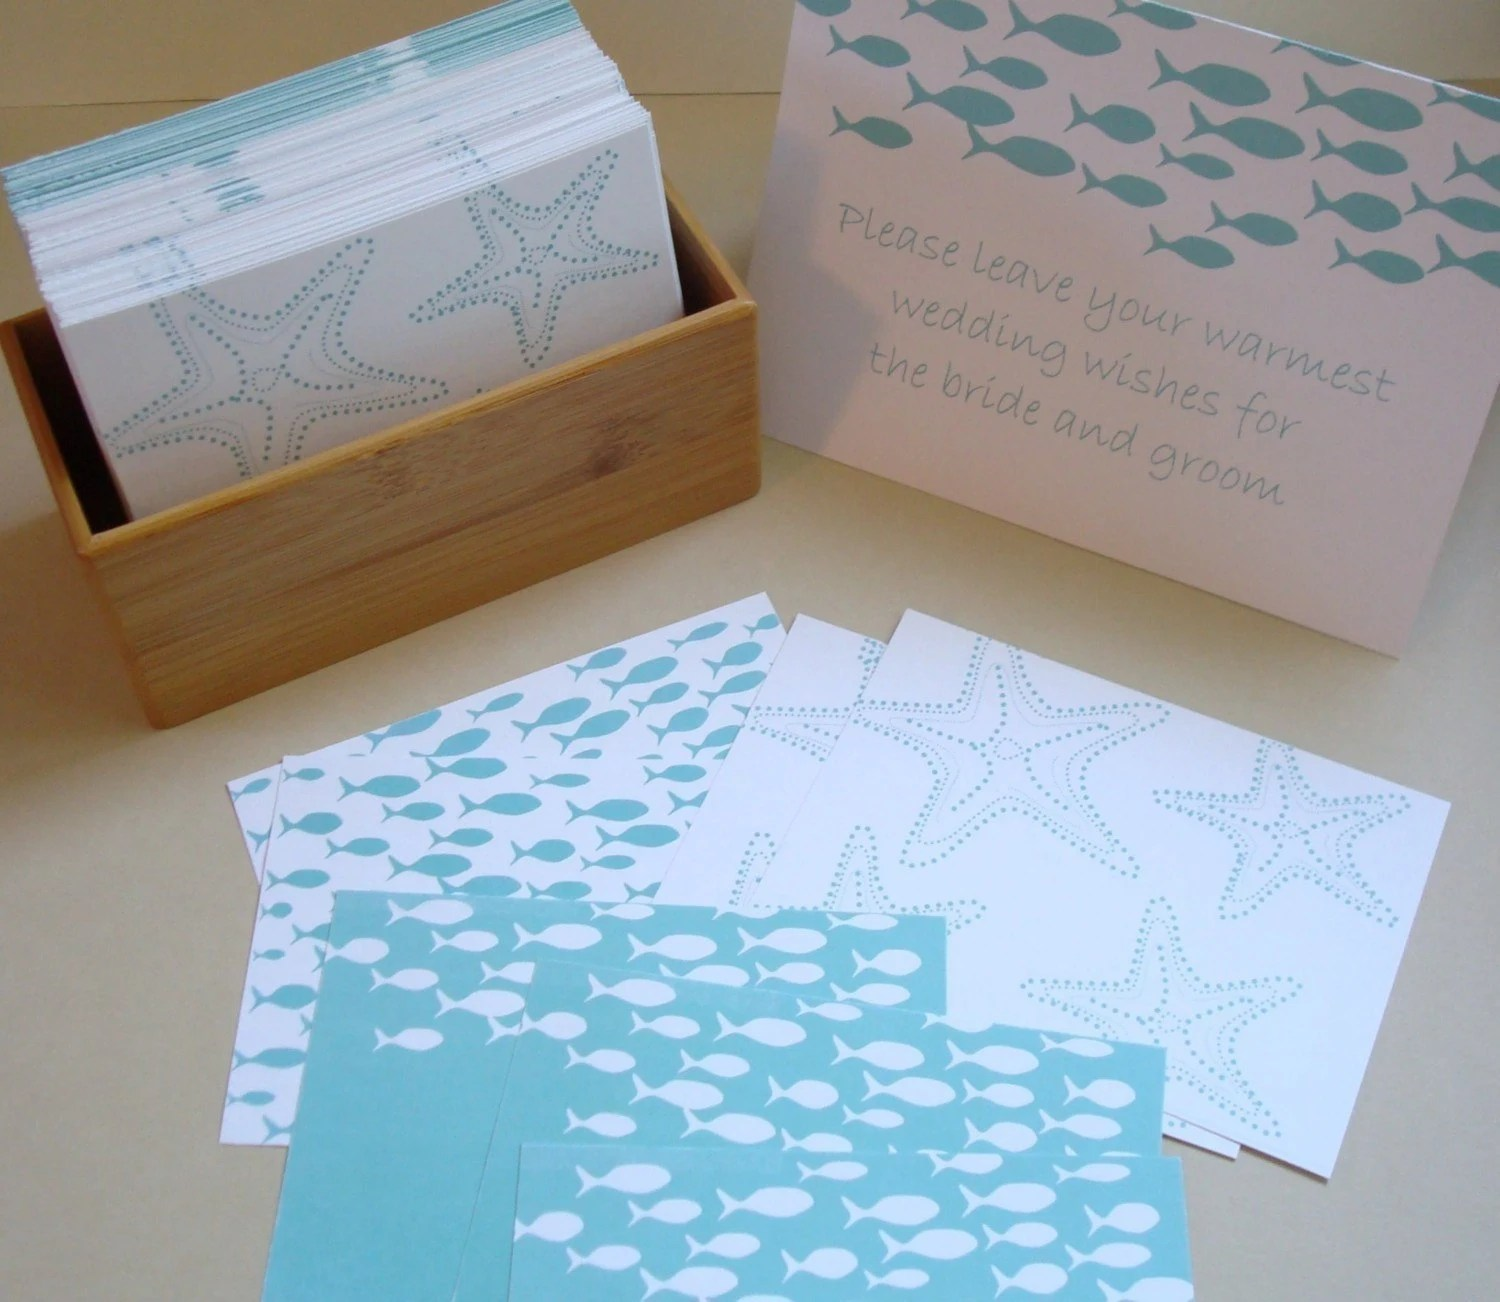 Guest Book - Note Cards with prompted messages - Set of 200